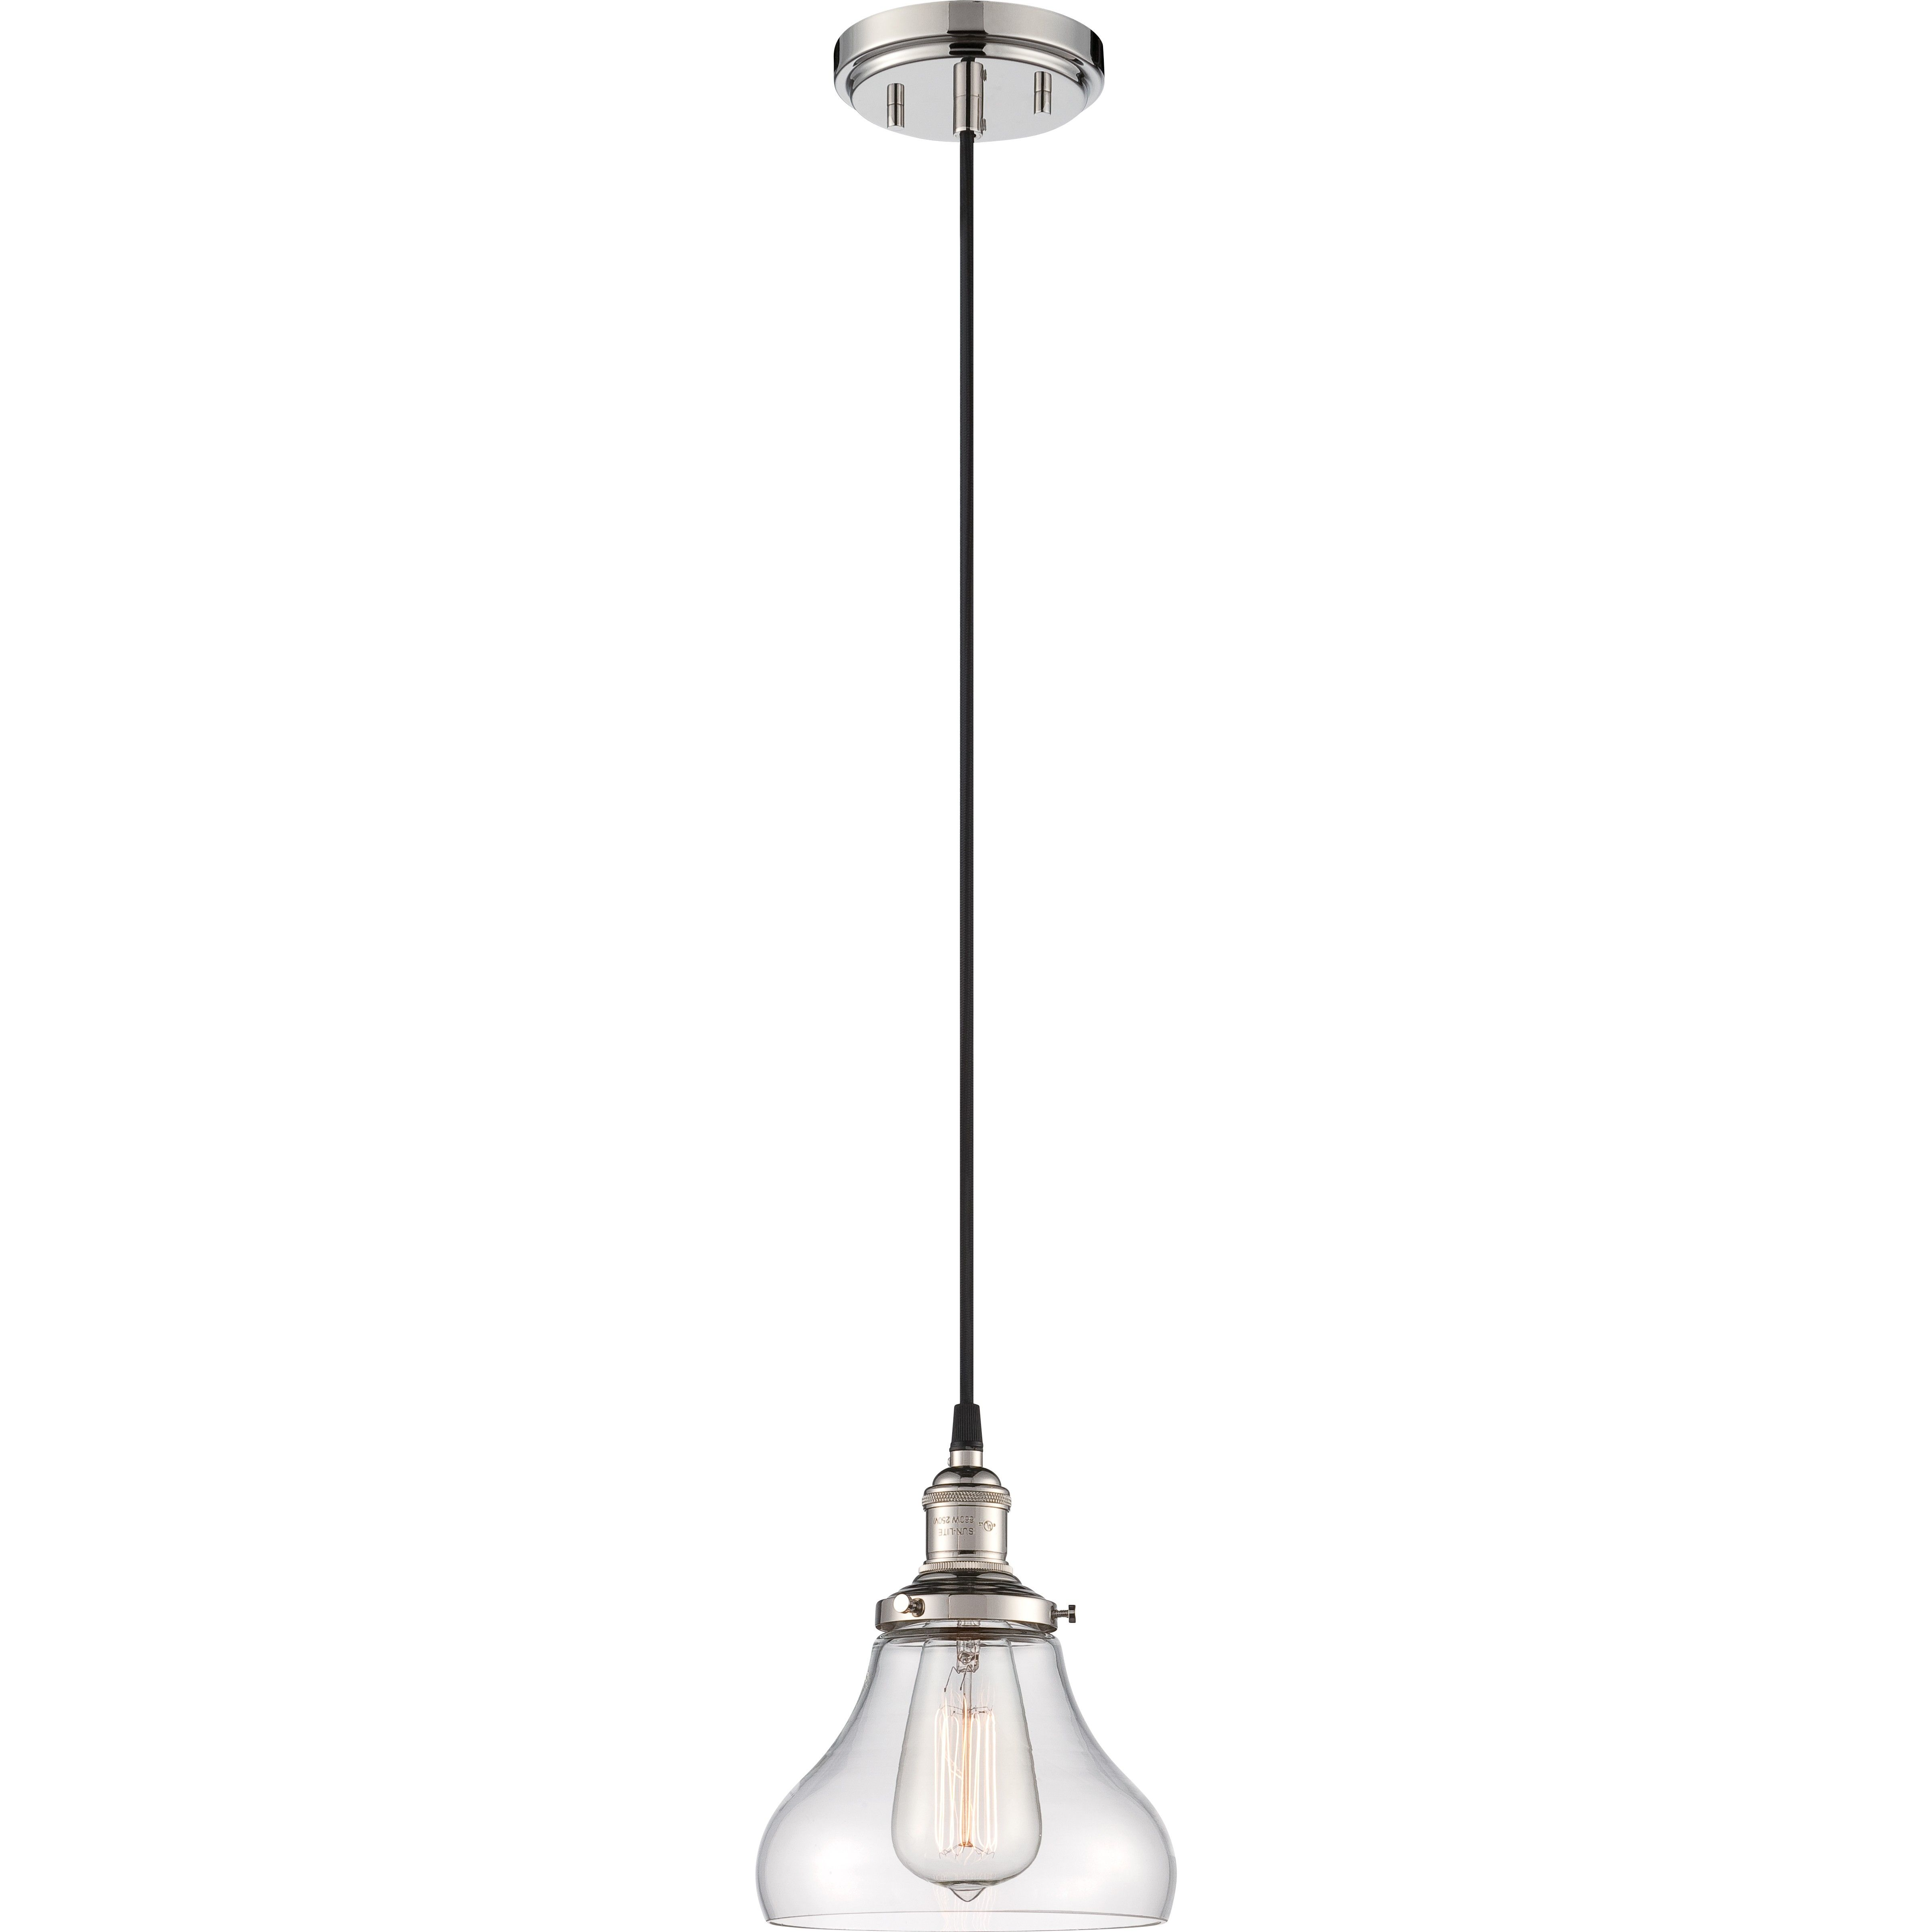 Nuvo 60 5403 1 light mini pendant light and vintage light bulb nuvo 60 5403 1 light mini pendant light and vintage light bulb mozeypictures Choice Image